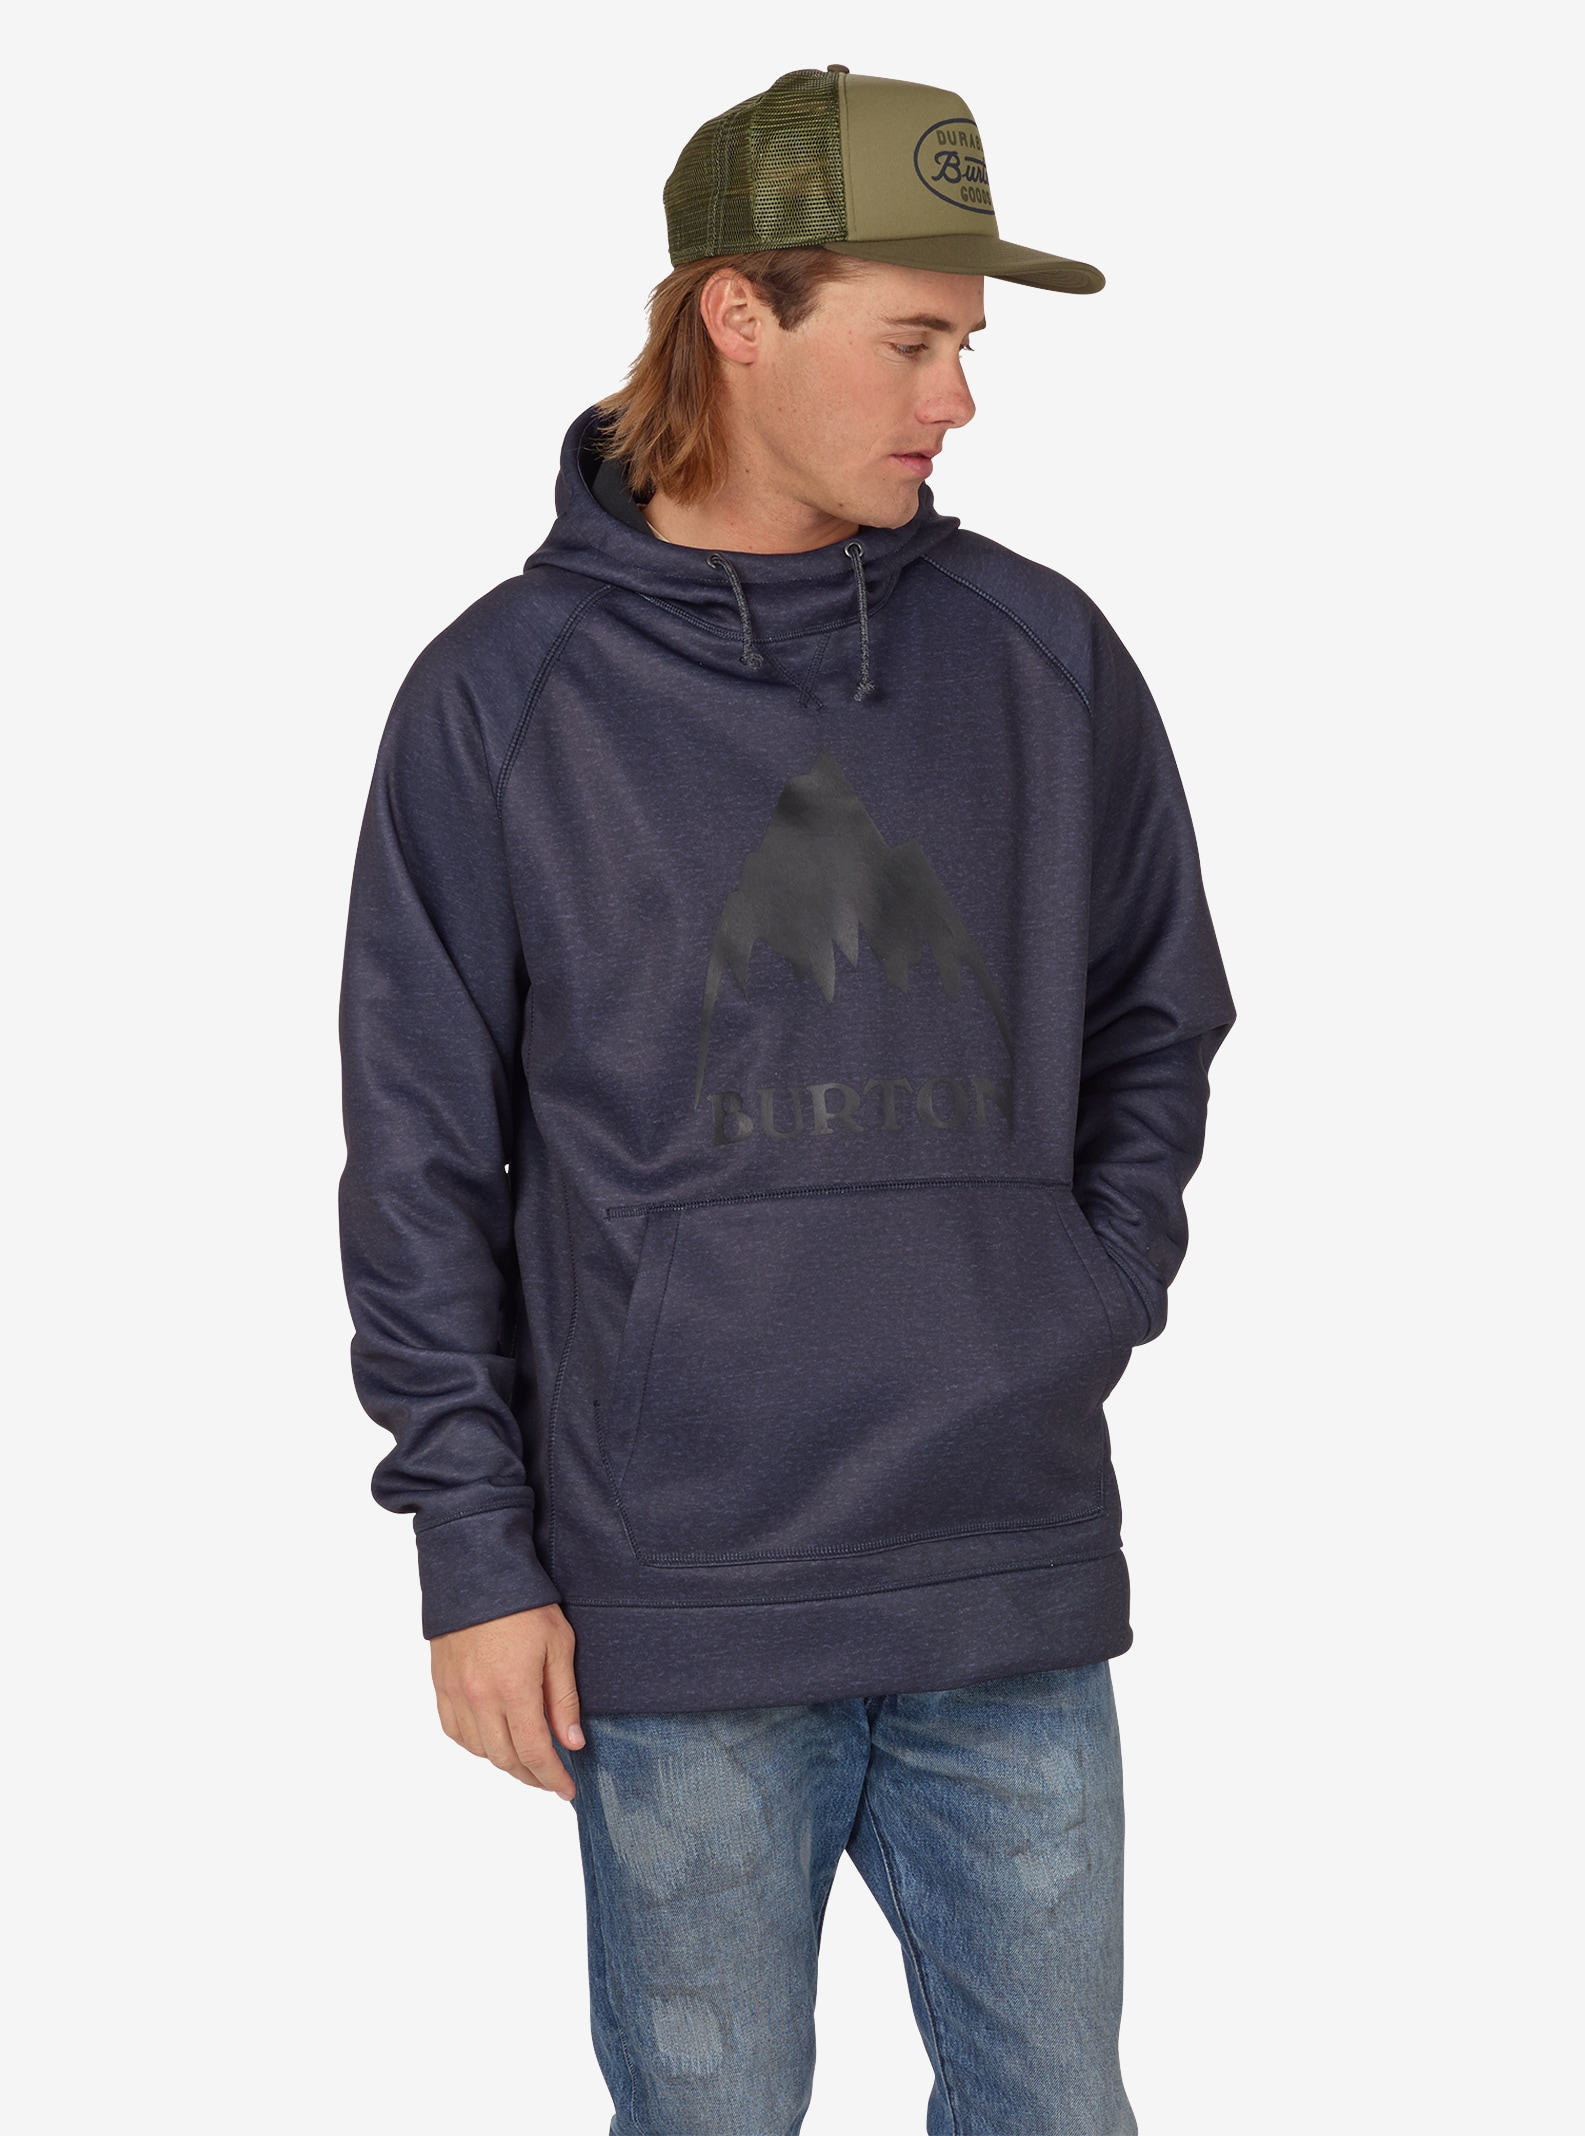 Men's Burton Crown Bonded Pullover Hoodie shown in Mood Indigo Heather